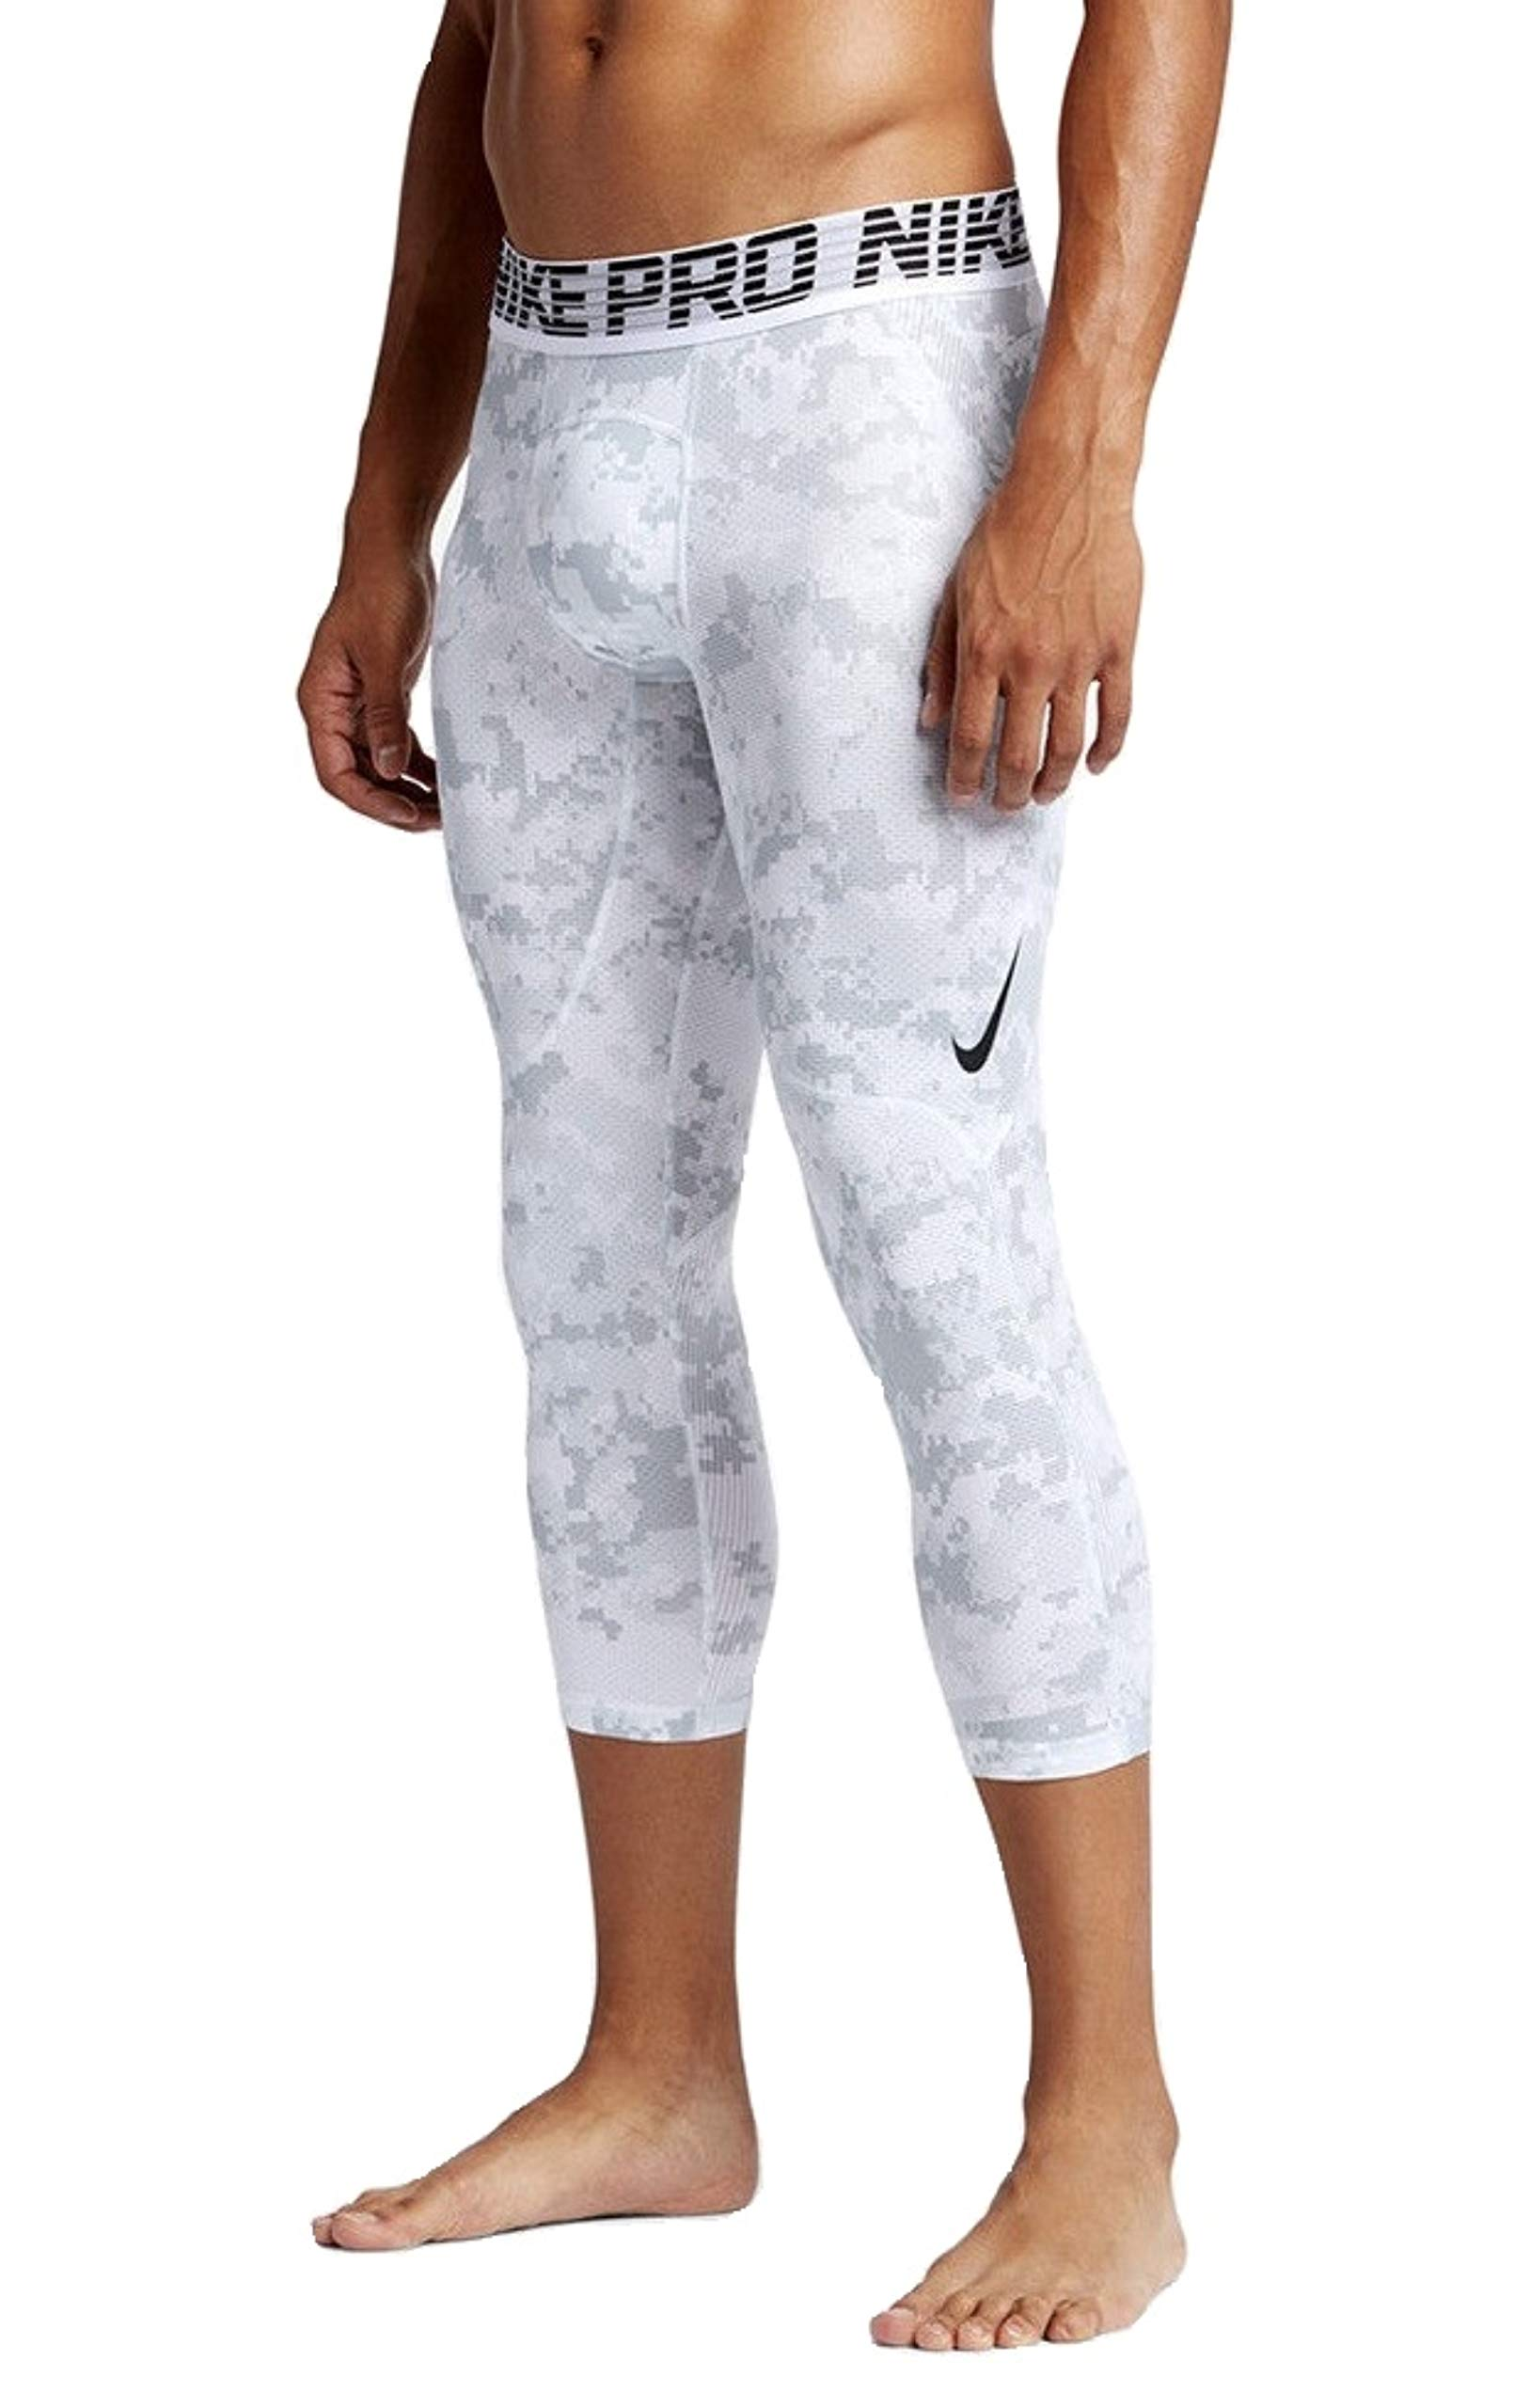 Nike Men's Pro 3/4 Tights (Came White/Grey/Black, XX-Large) by Nike